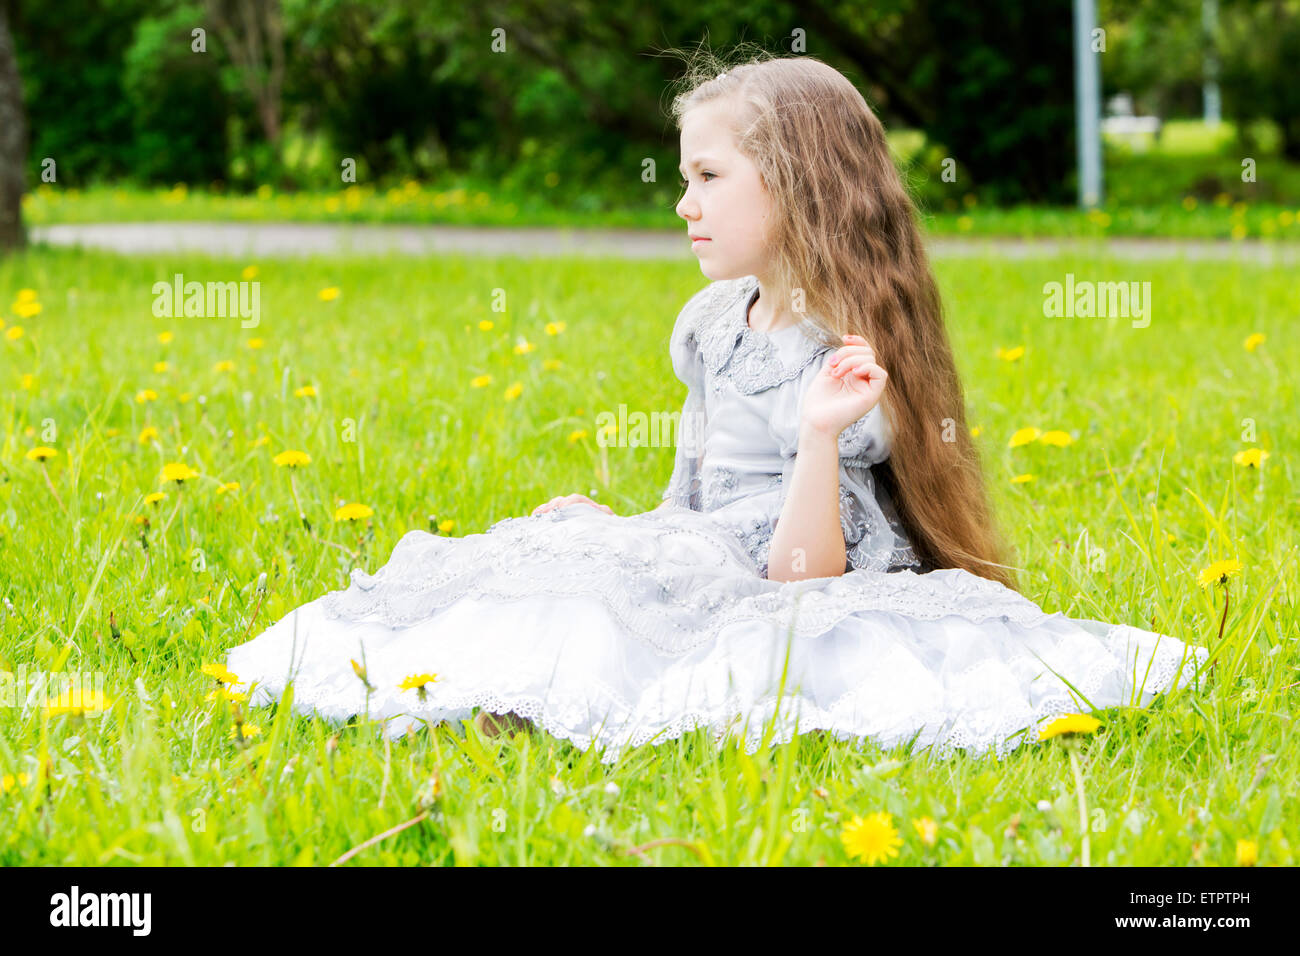 Playful princess is looking directly at someone - Stock Image